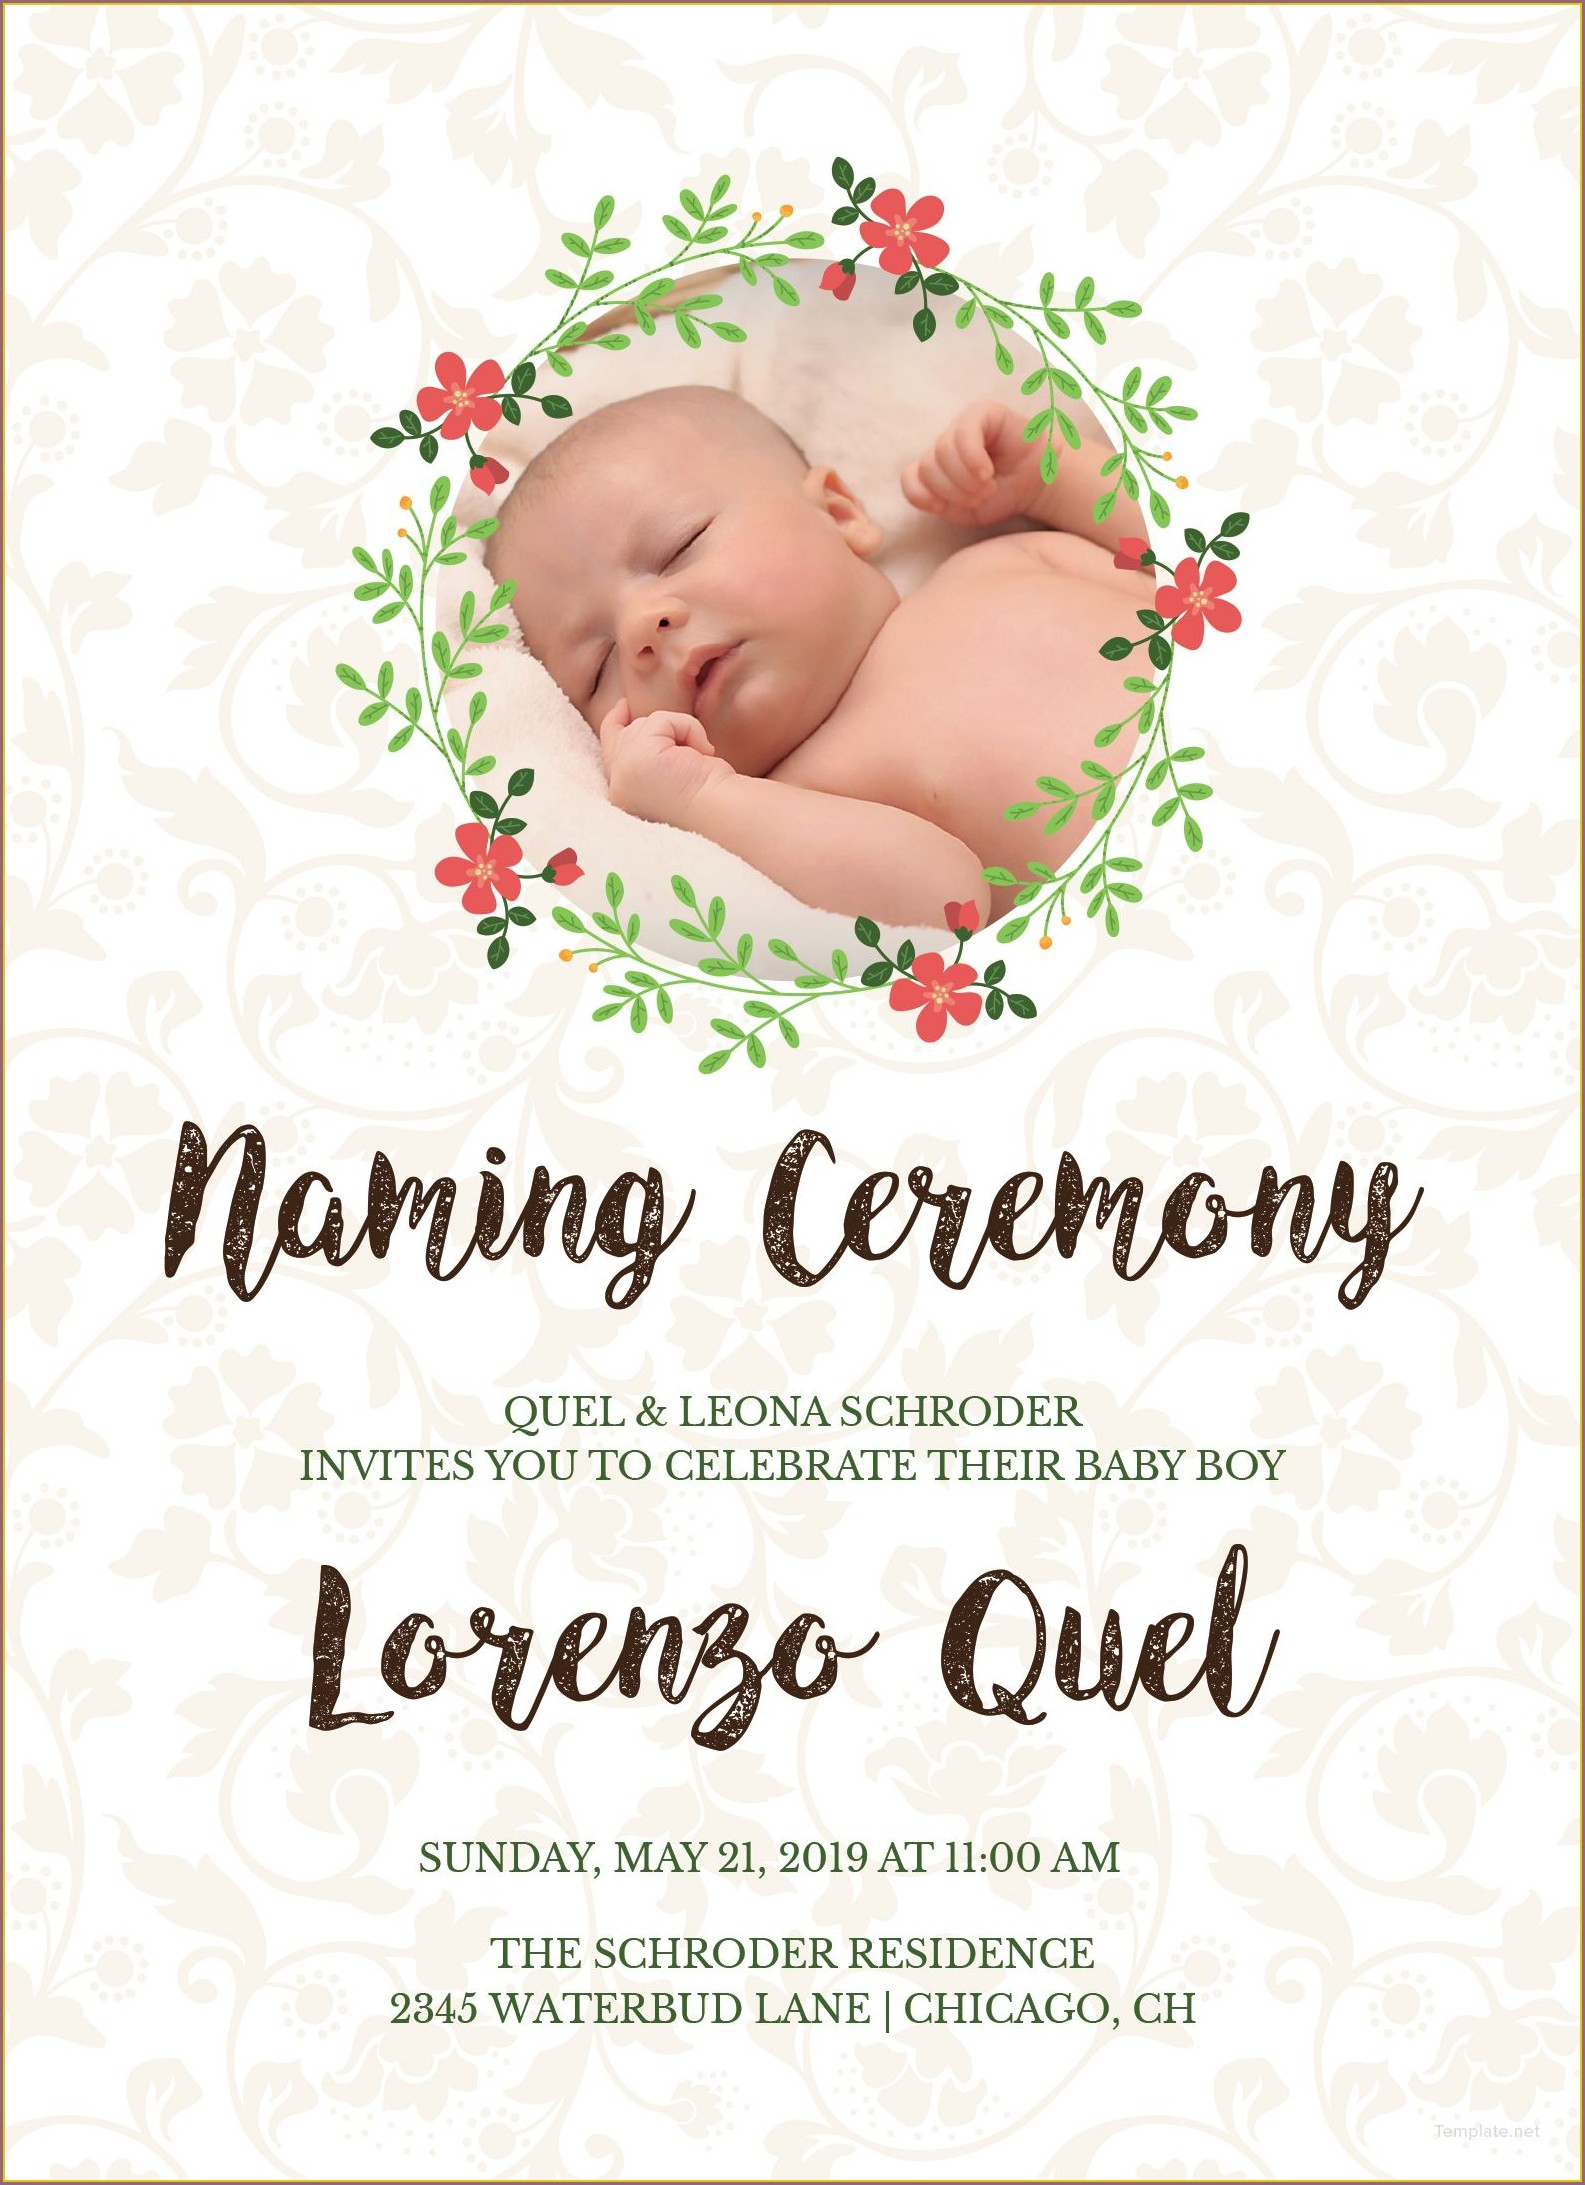 Baby Cradle Ceremony Invitation Wording